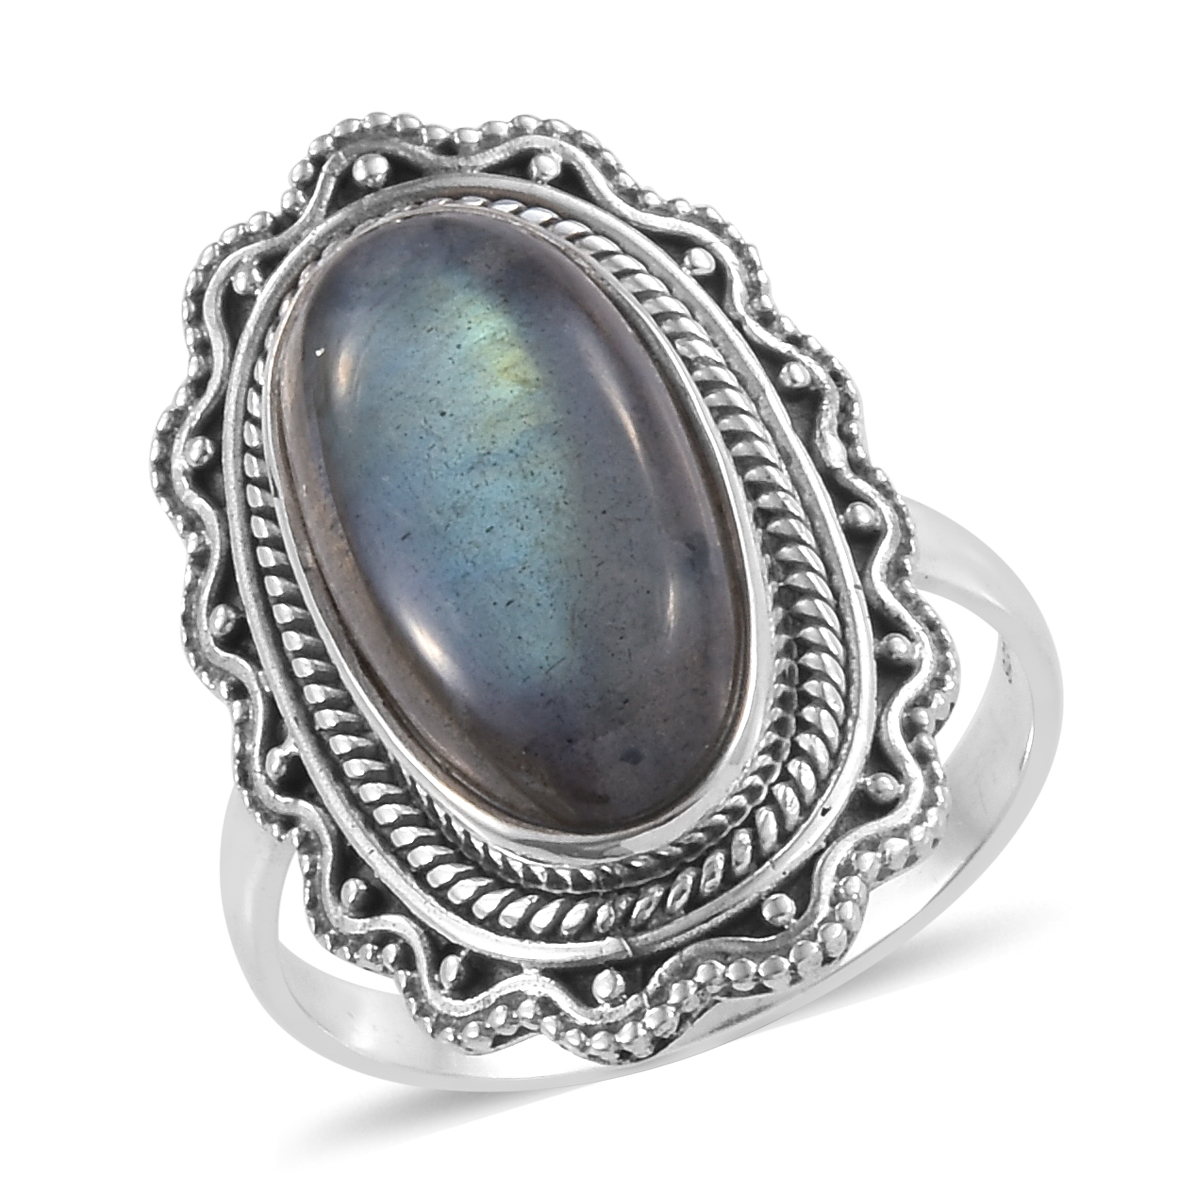 598a406bf1 Artisan Crafted Malagasy Labradorite Sterling Silver Elongated Ring (Size  5.0) TGW 10.81 cts. | Shop LC